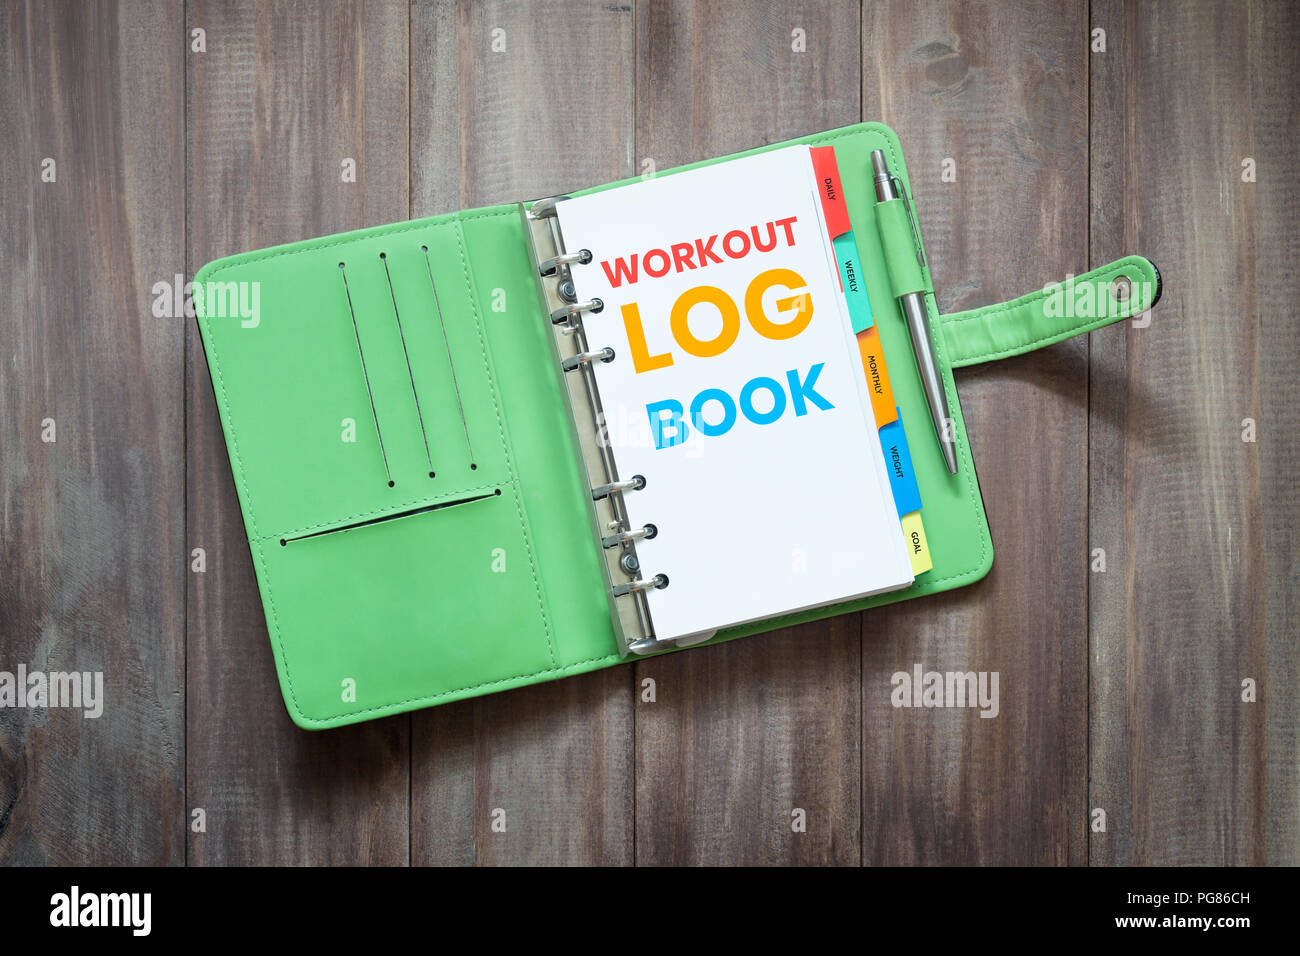 workout log book body care and beauty weight and dieting healthy